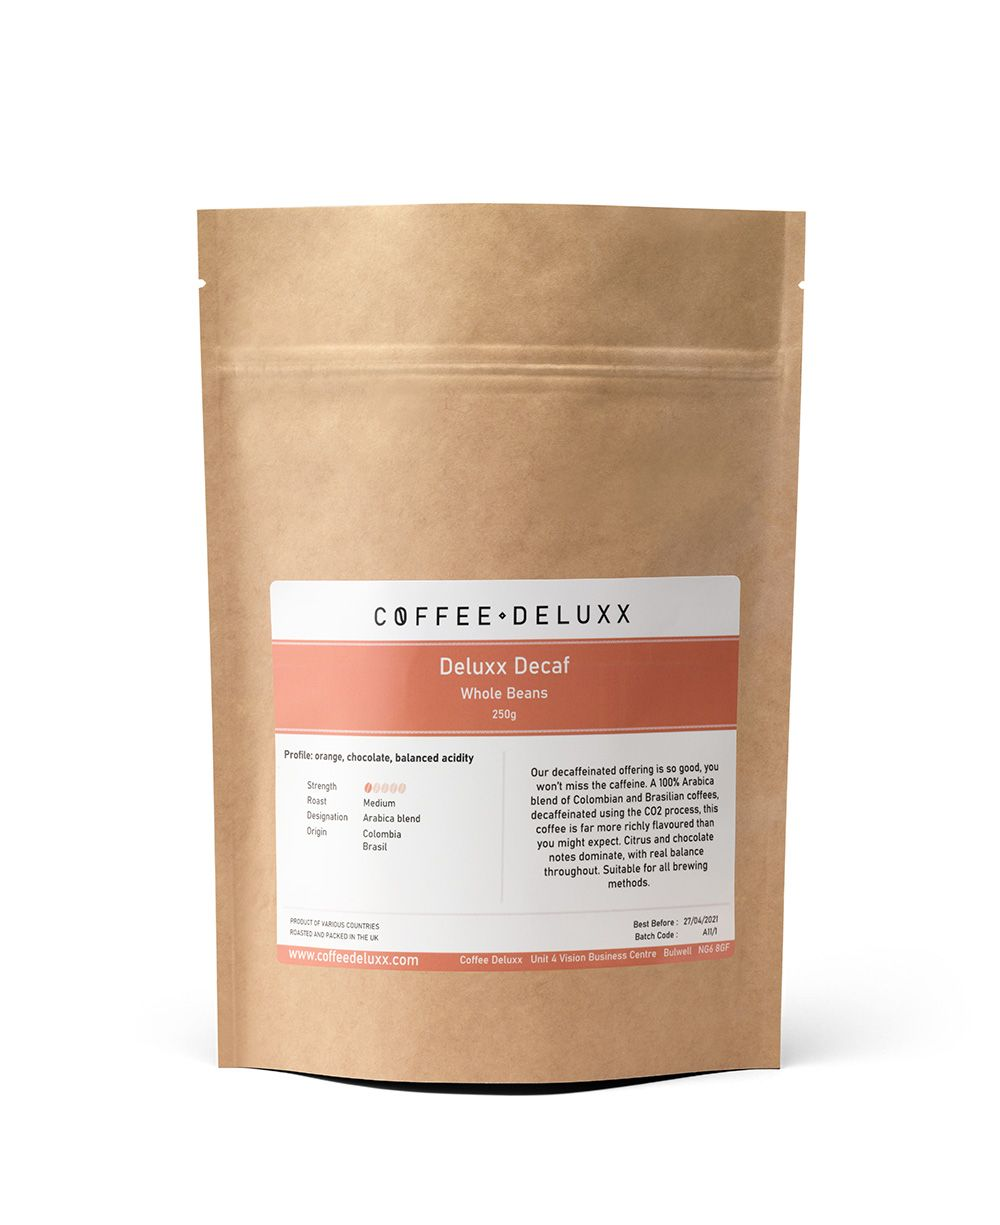 Deluxx Decaf (Hints of Chocolate Orange)